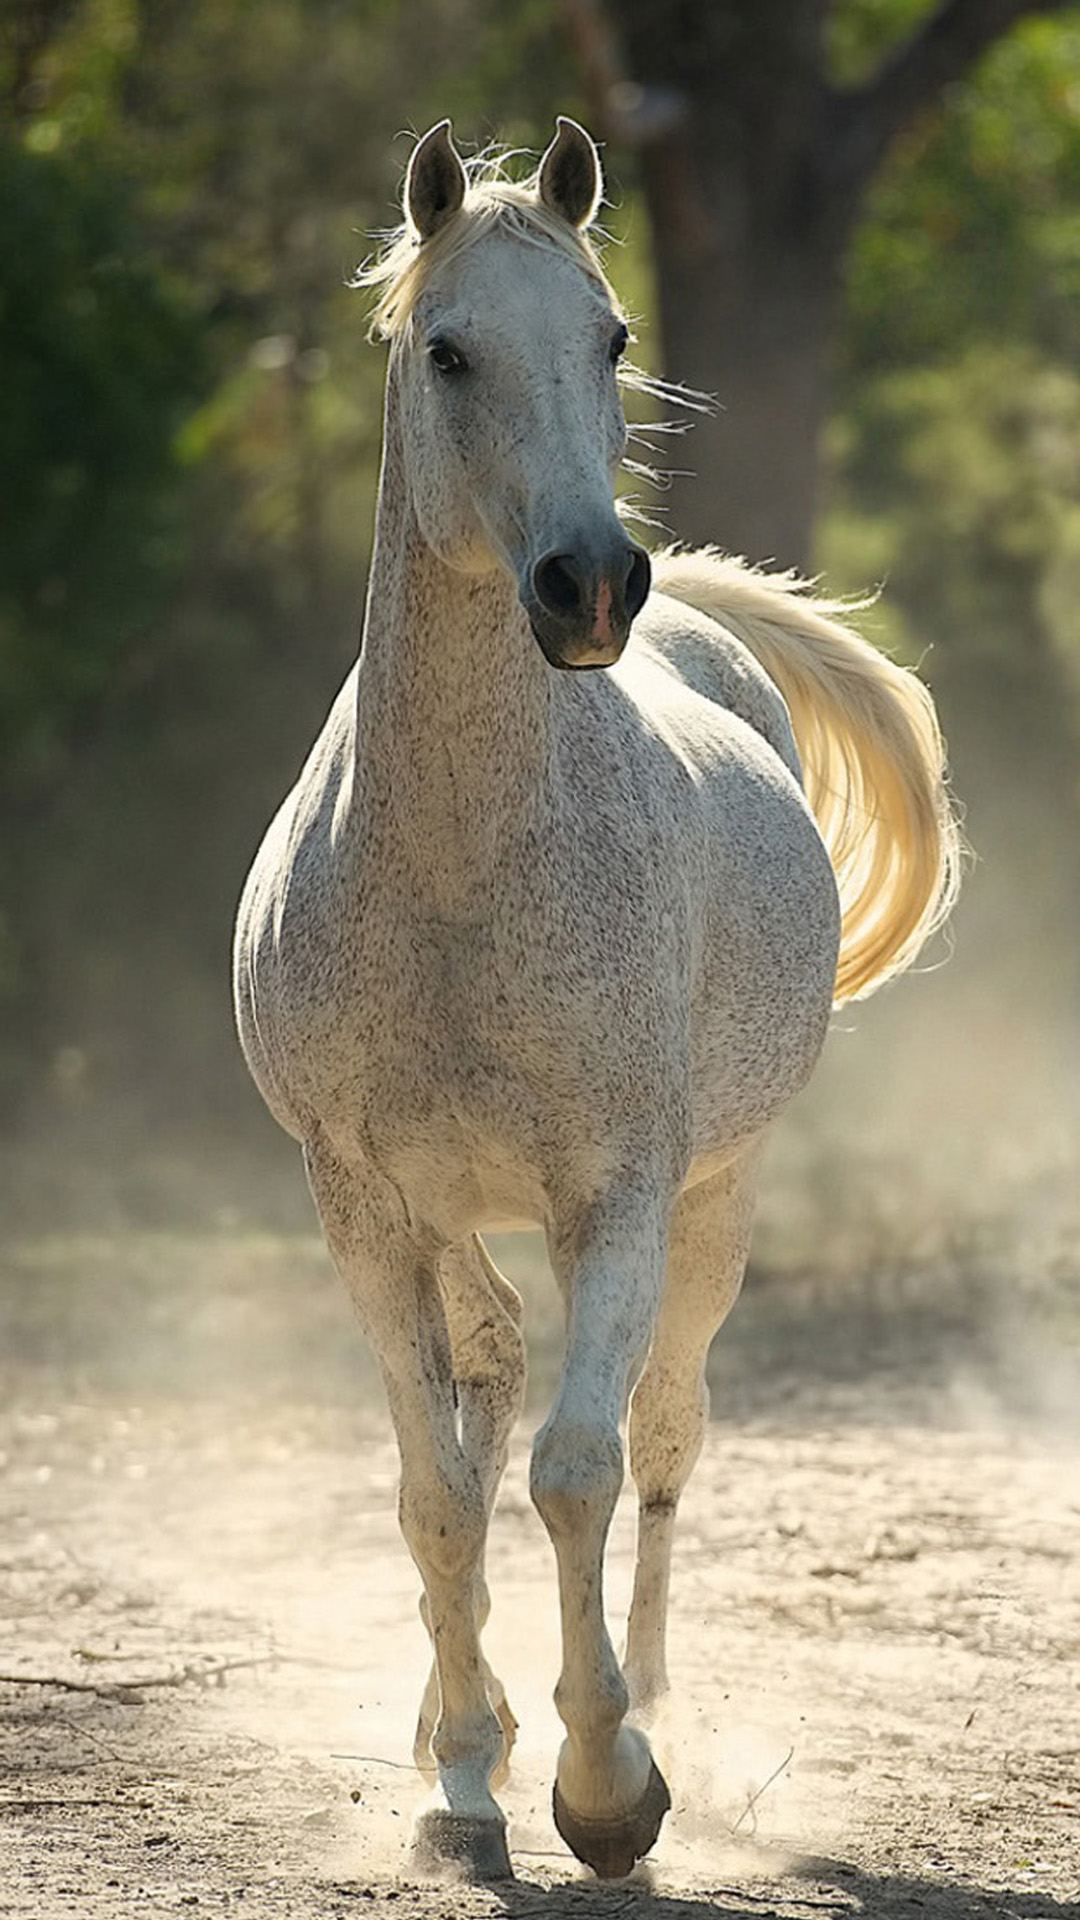 Running Horse Android Wallpaper Android Hd Wallpapers